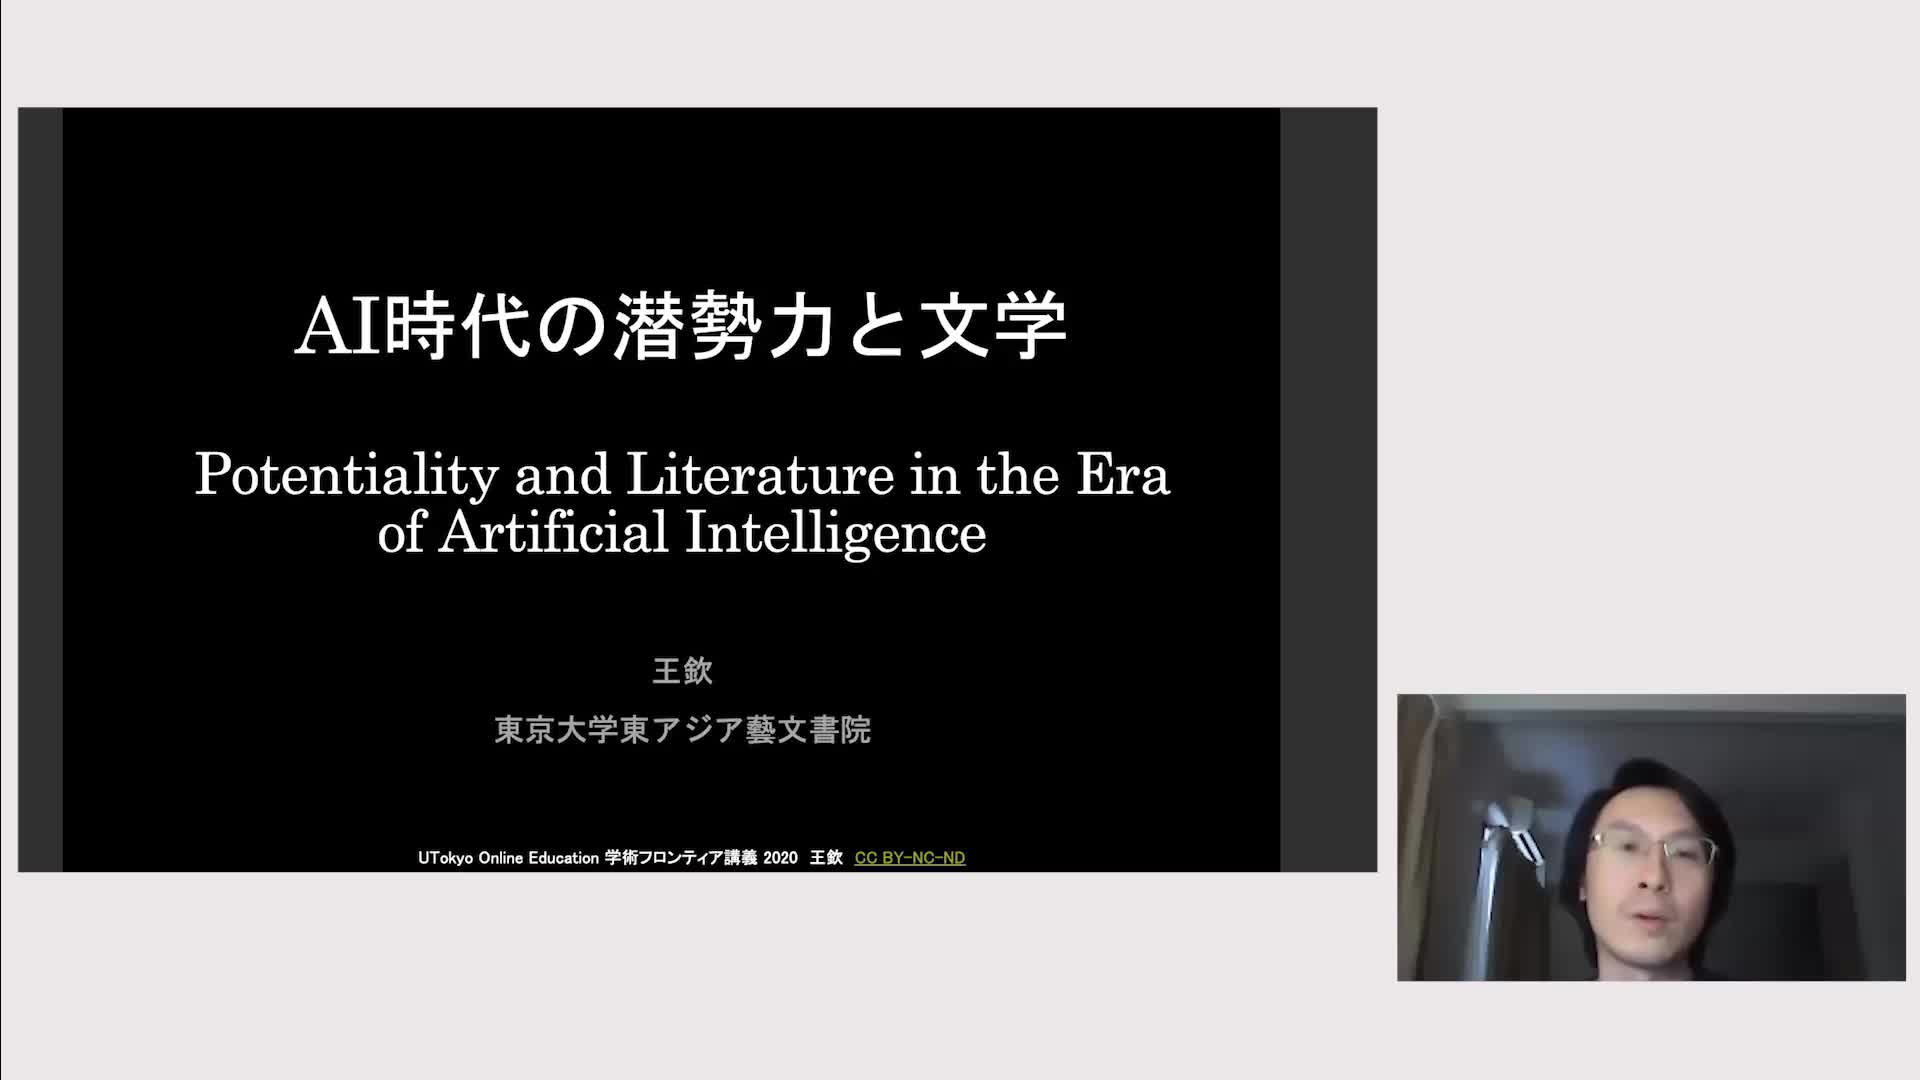 Potentiality and Literature in the Era of Artificial Intelligence